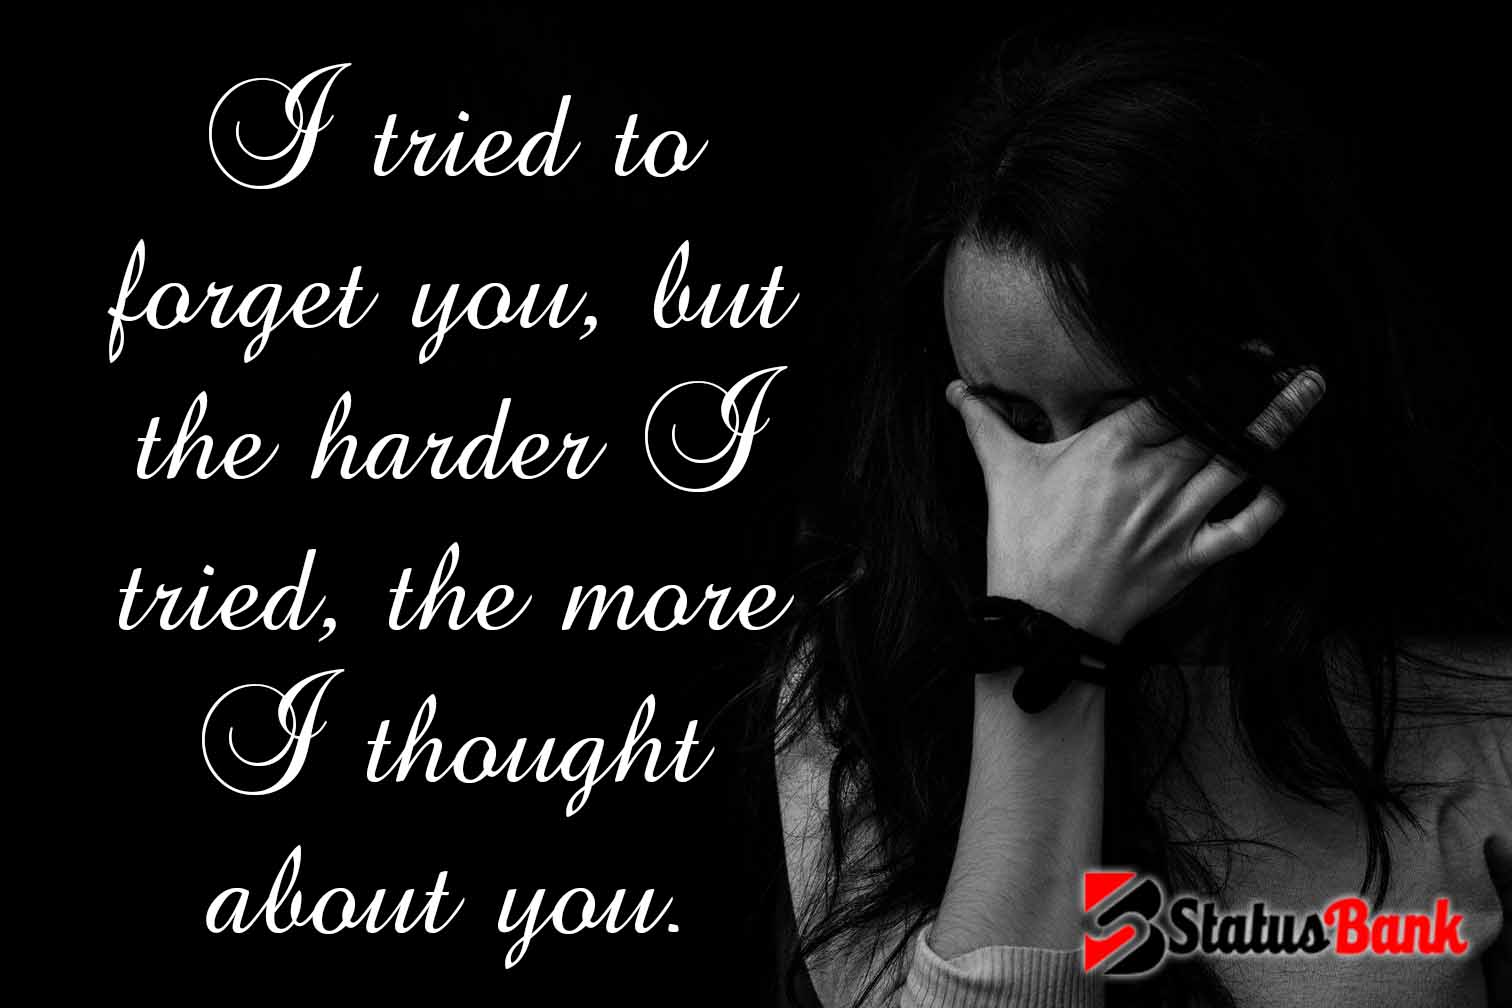 Sad Whatsapp Status Quotes With Images New Best